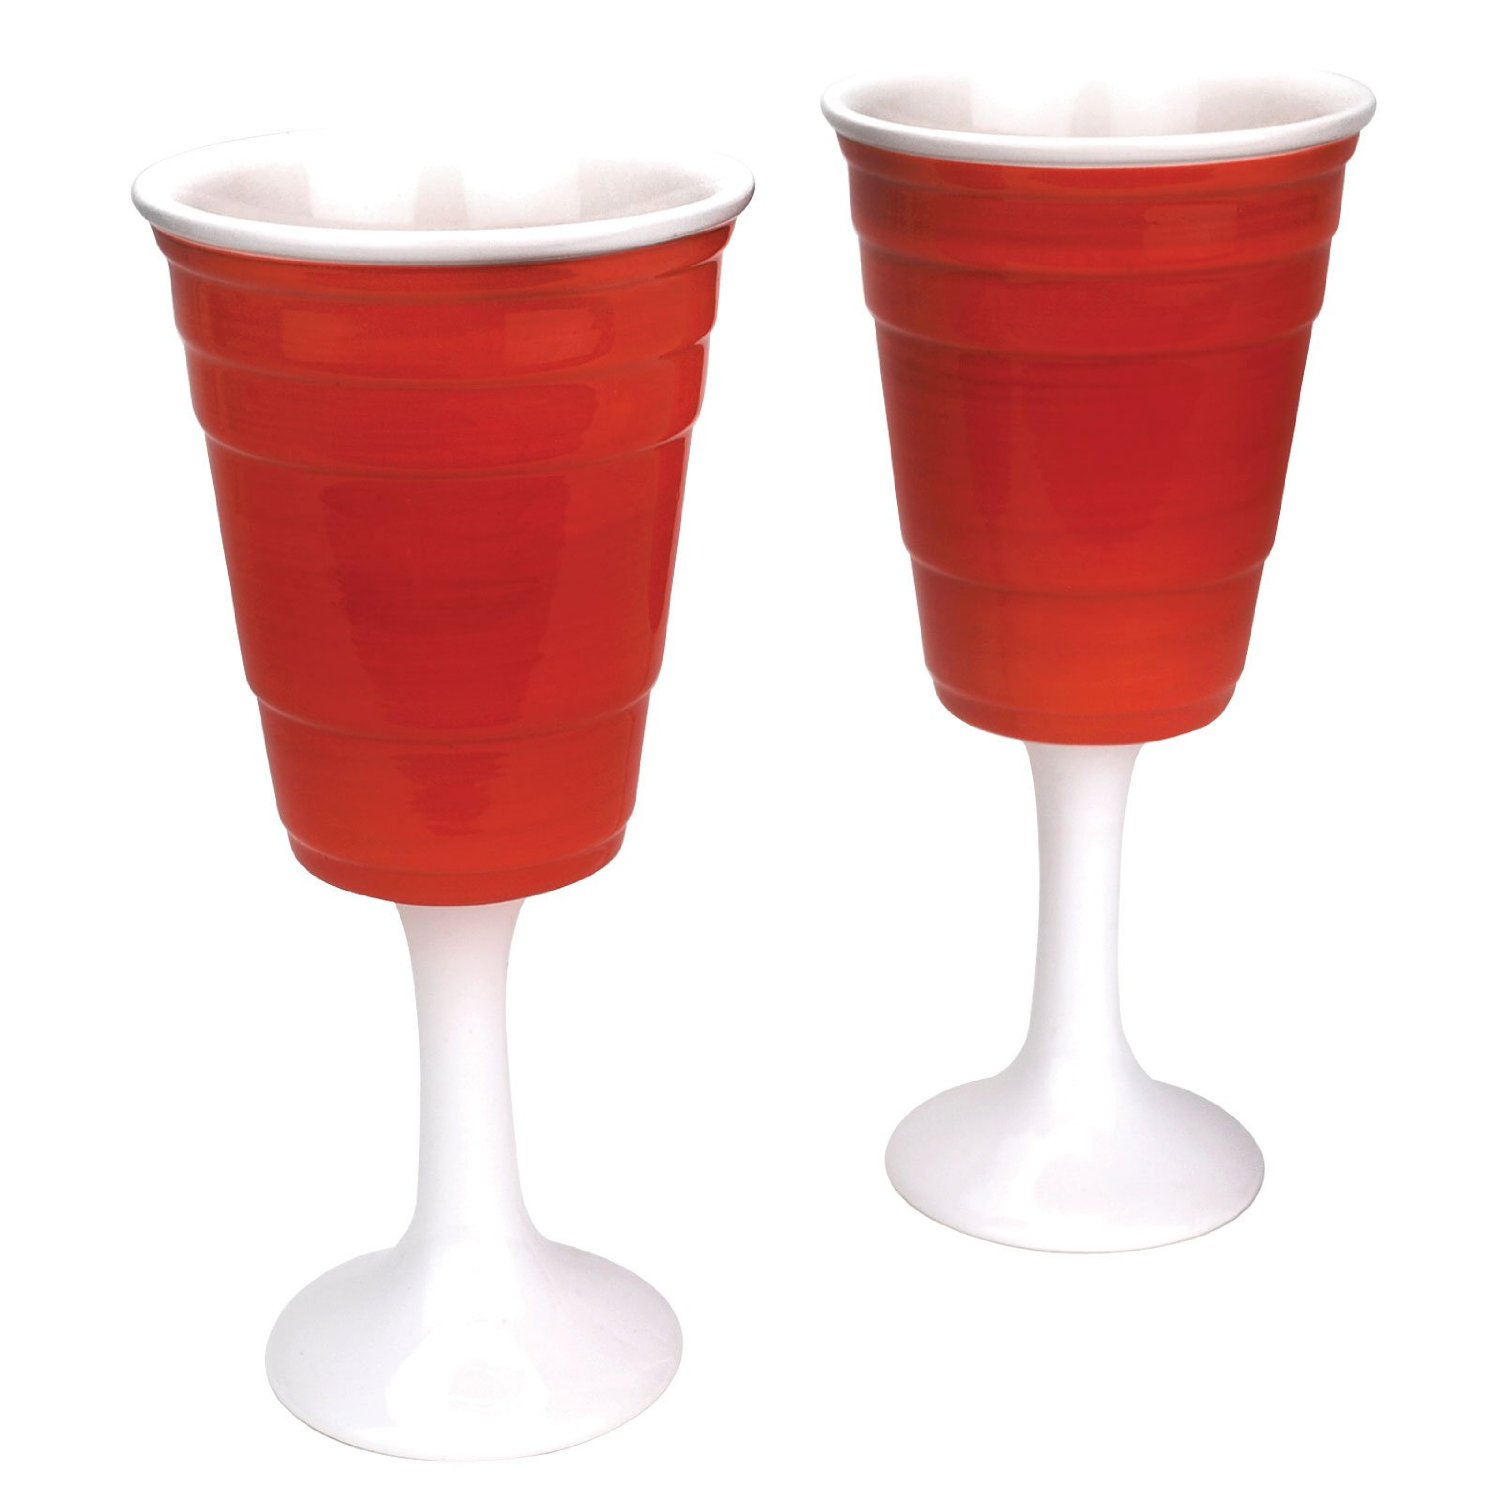 Interesting_Wine_Glass_6